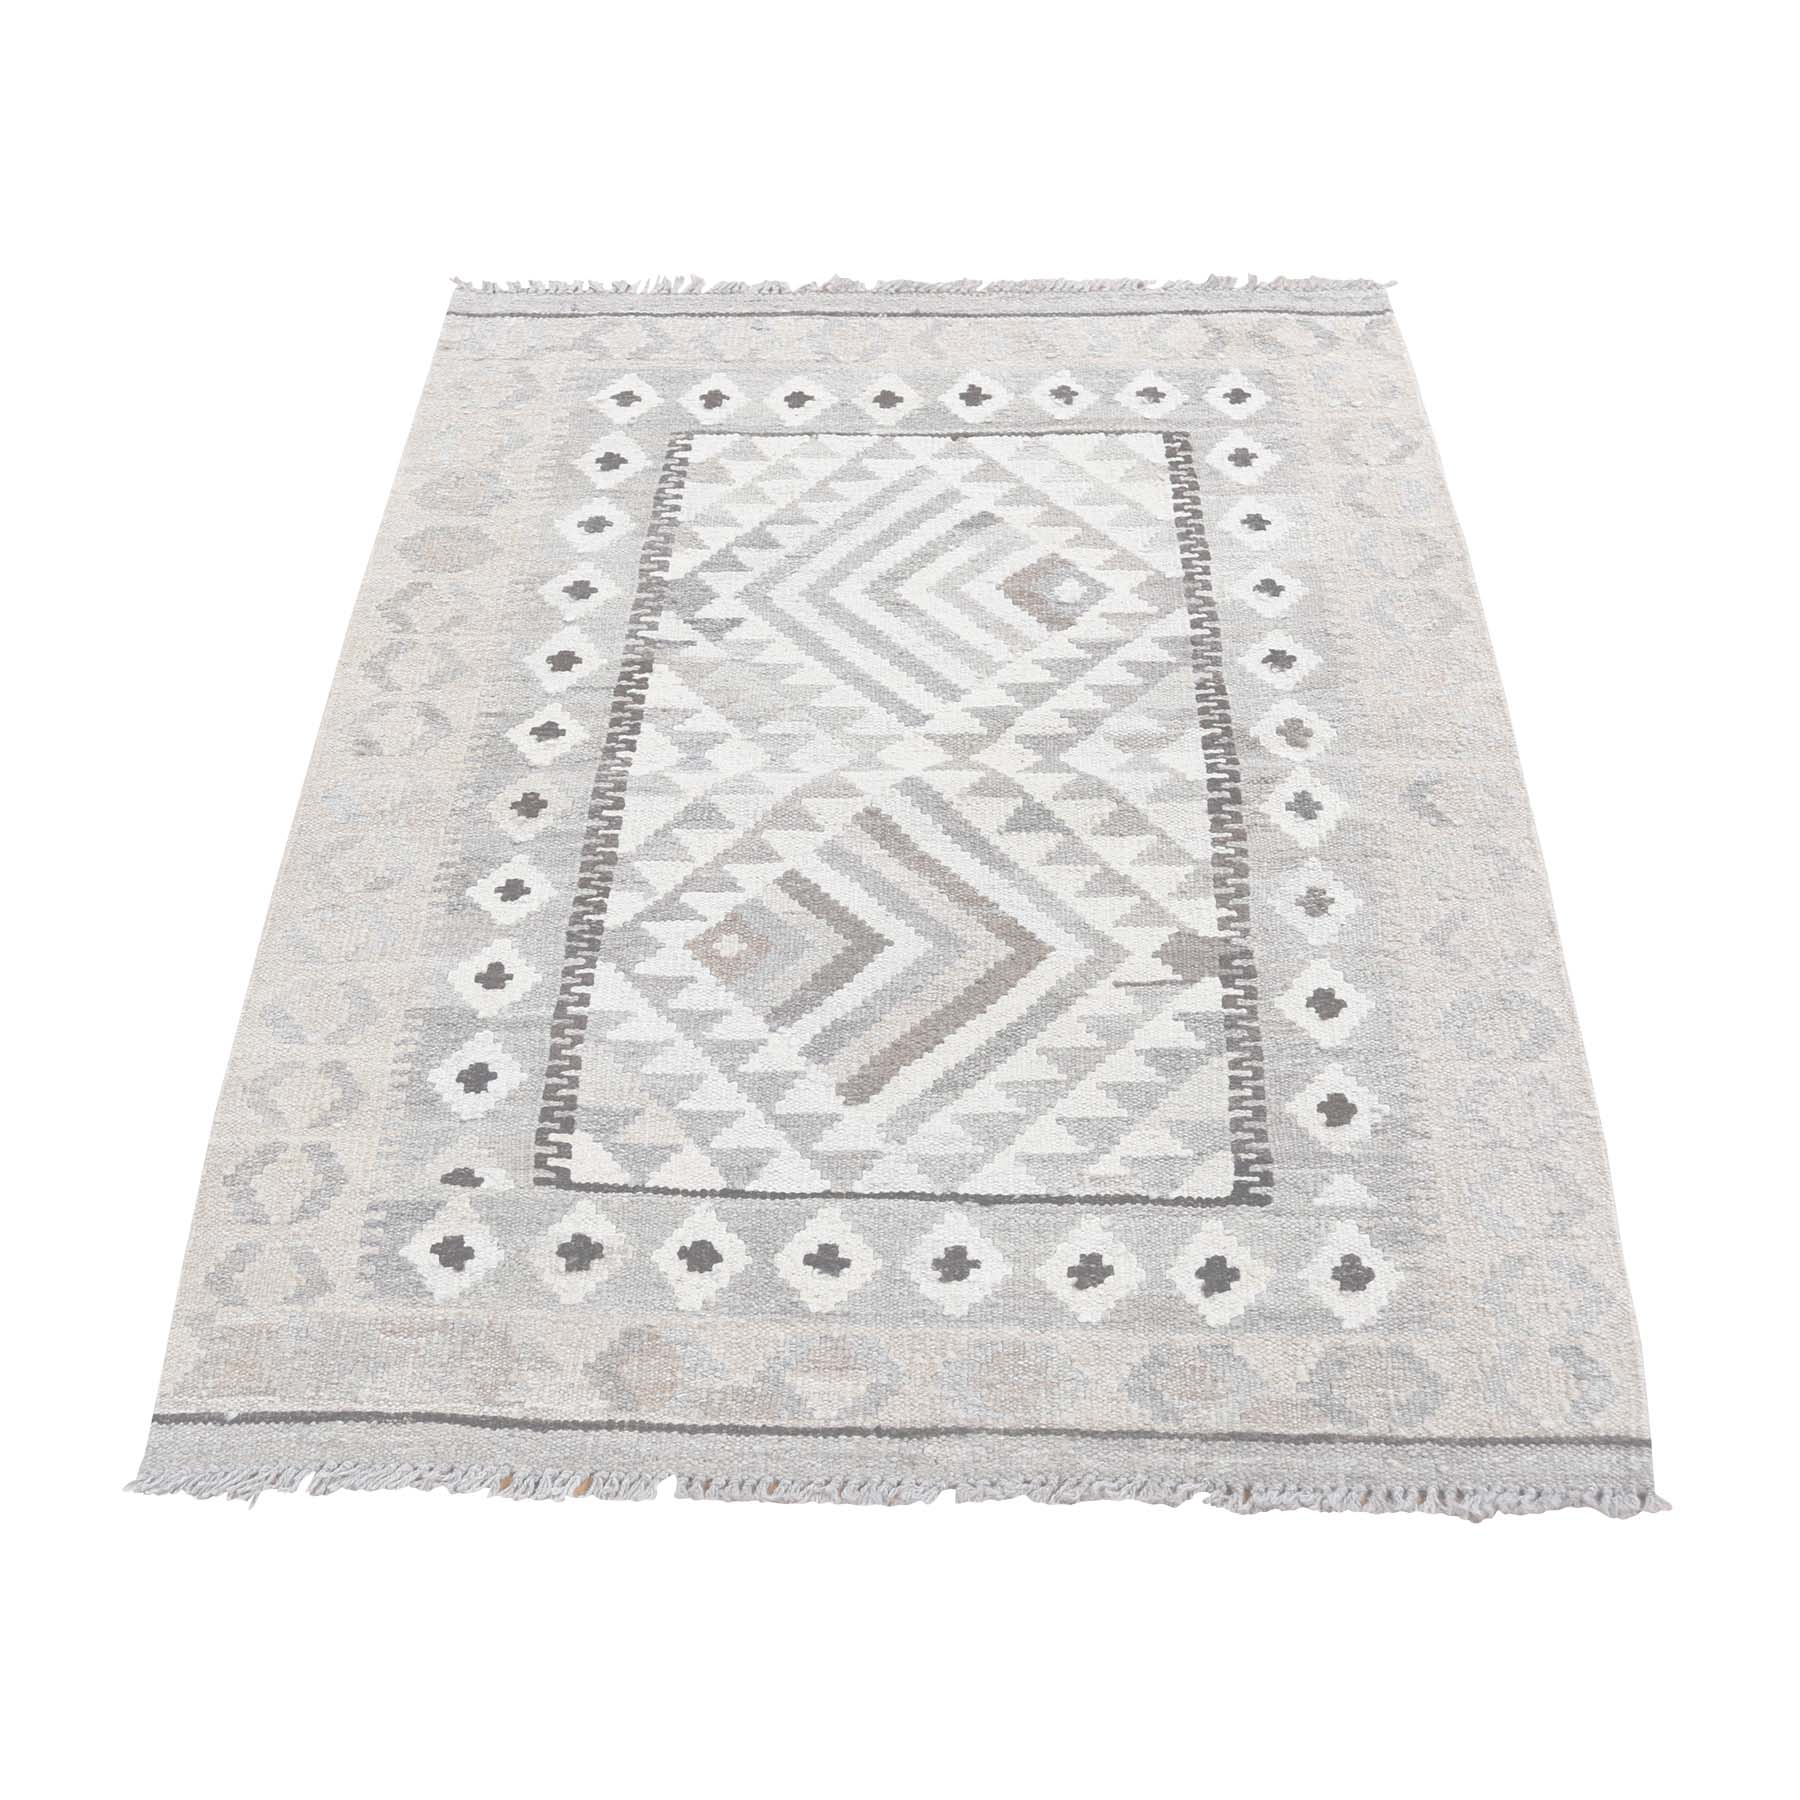 "2'8""x4' Undyed Natural Wool Afghan Kilim Reversible Hand Woven Oriental Rug"